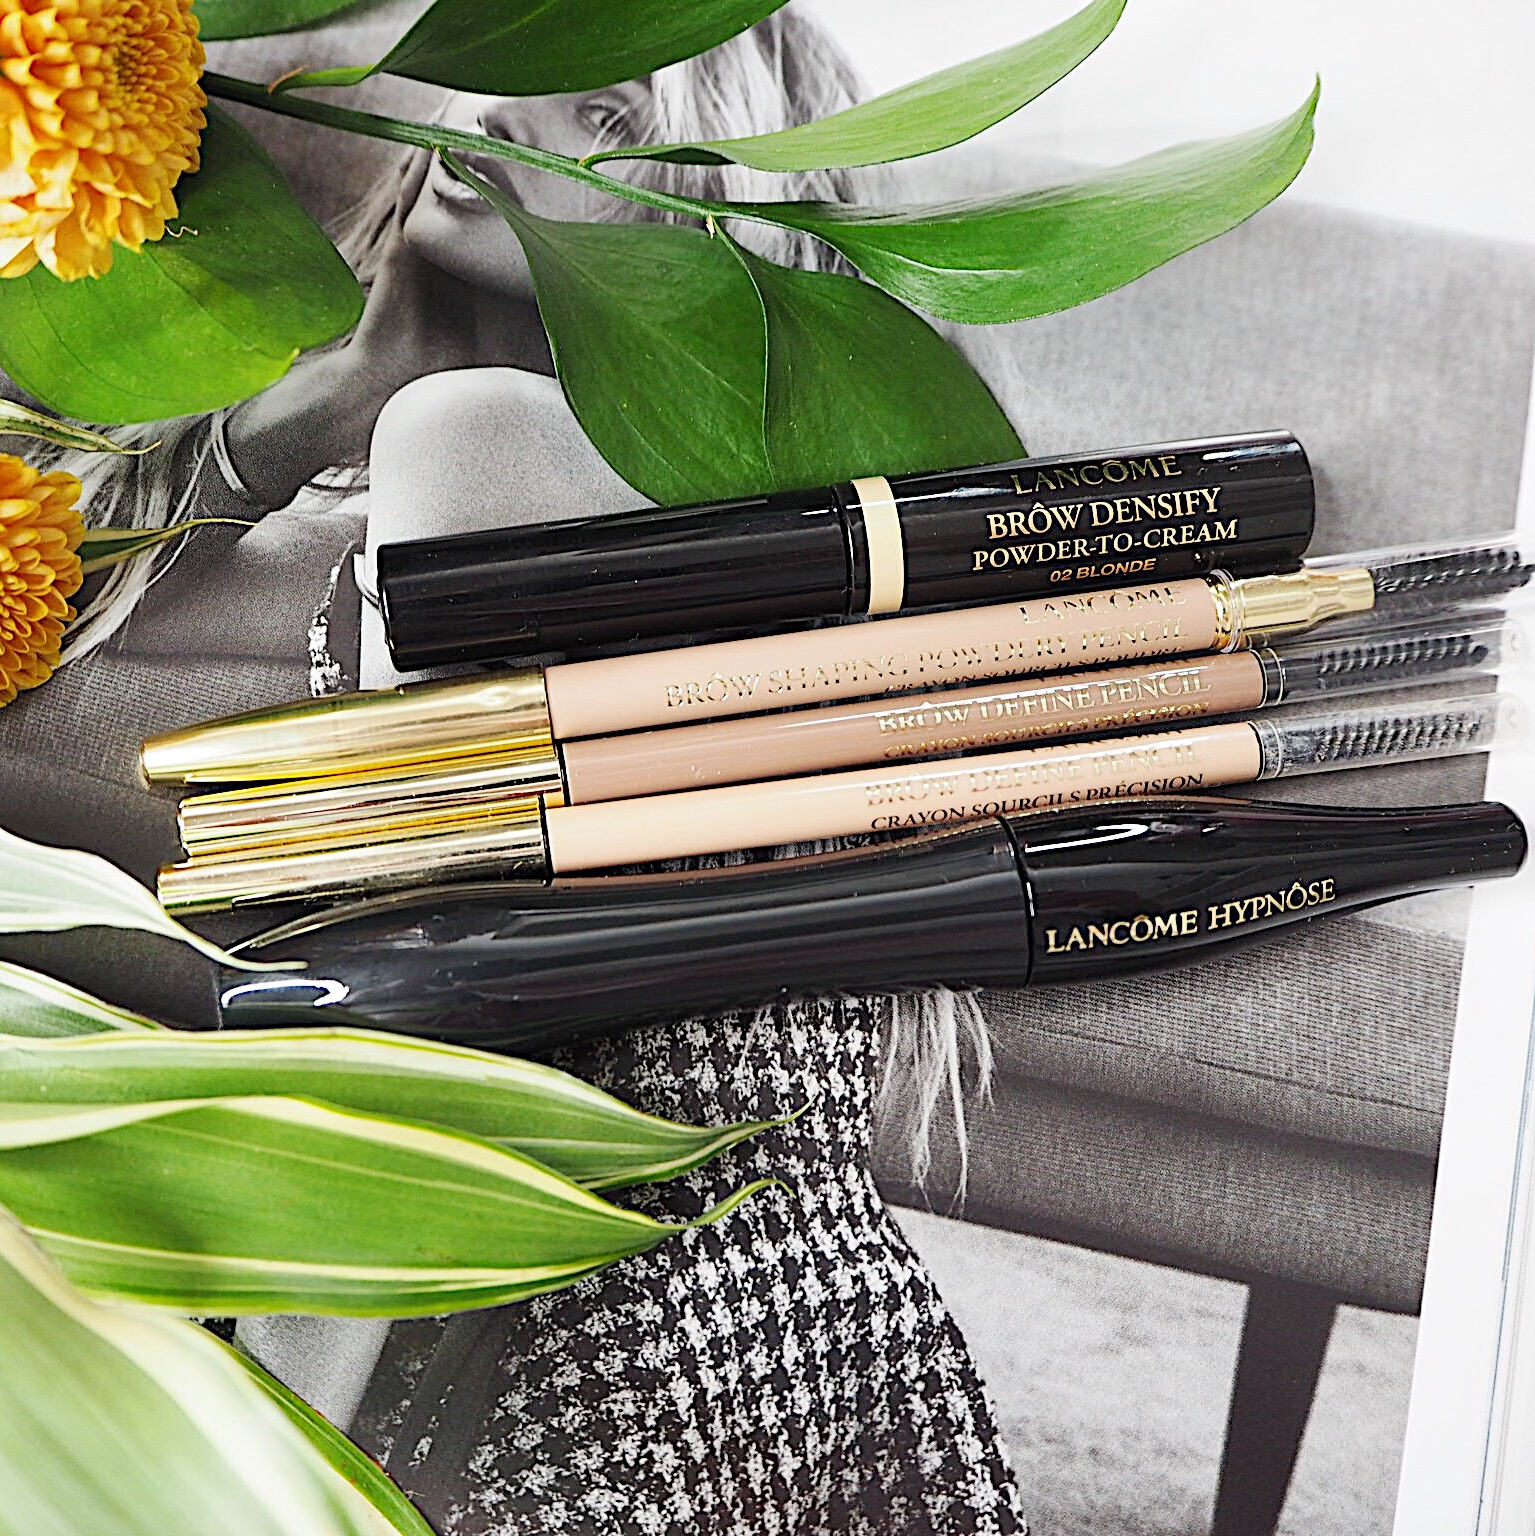 Brows and Lashes – Lancome Brow Densify and Hypnose Mascara